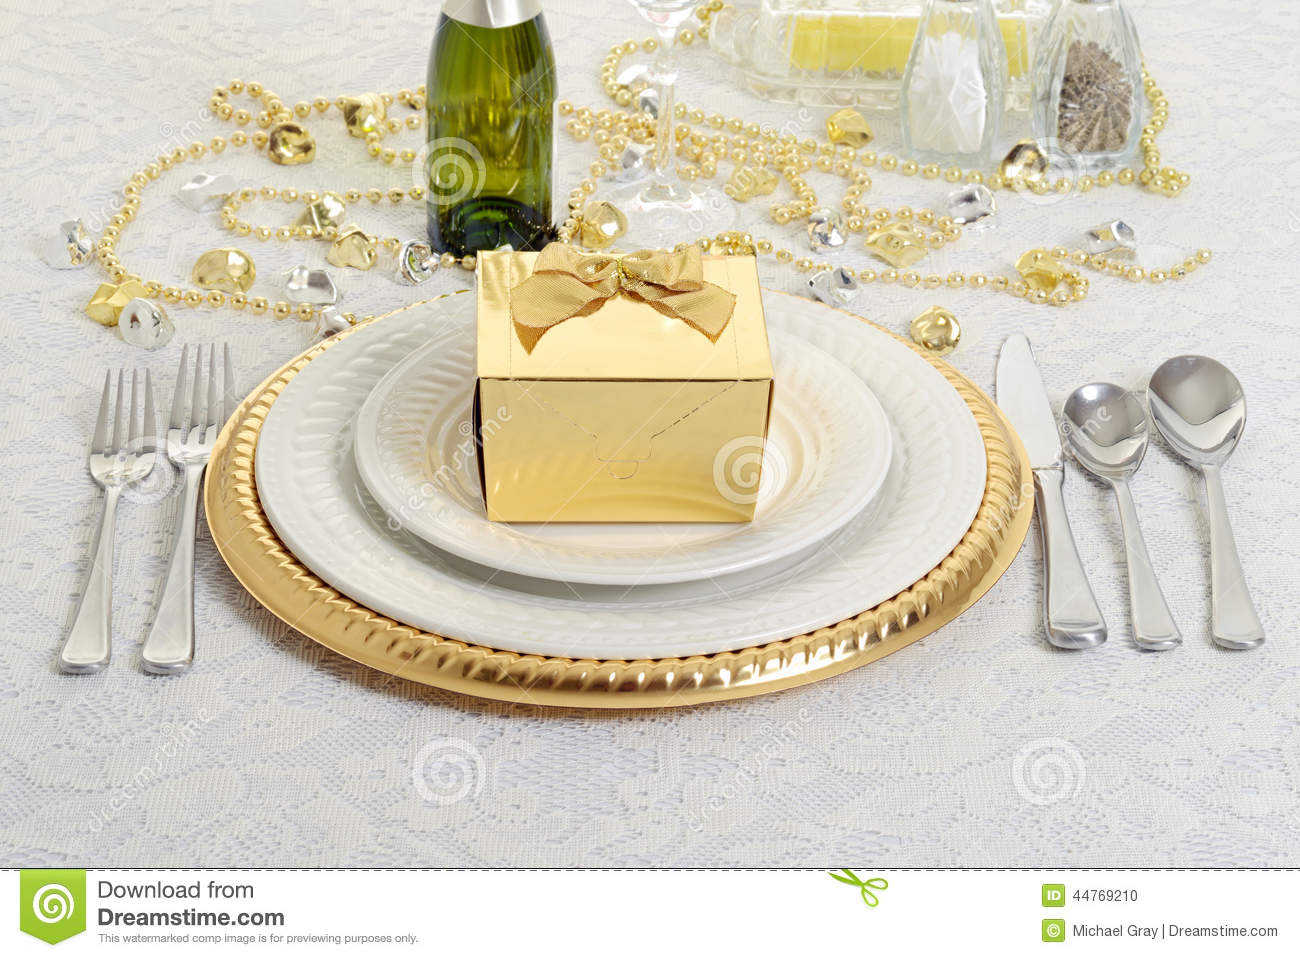 Silver and gold table setting with present  sc 1 st  Dreamstime.com & Silver And Gold Table Setting With Present Stock Photo - Image of ...